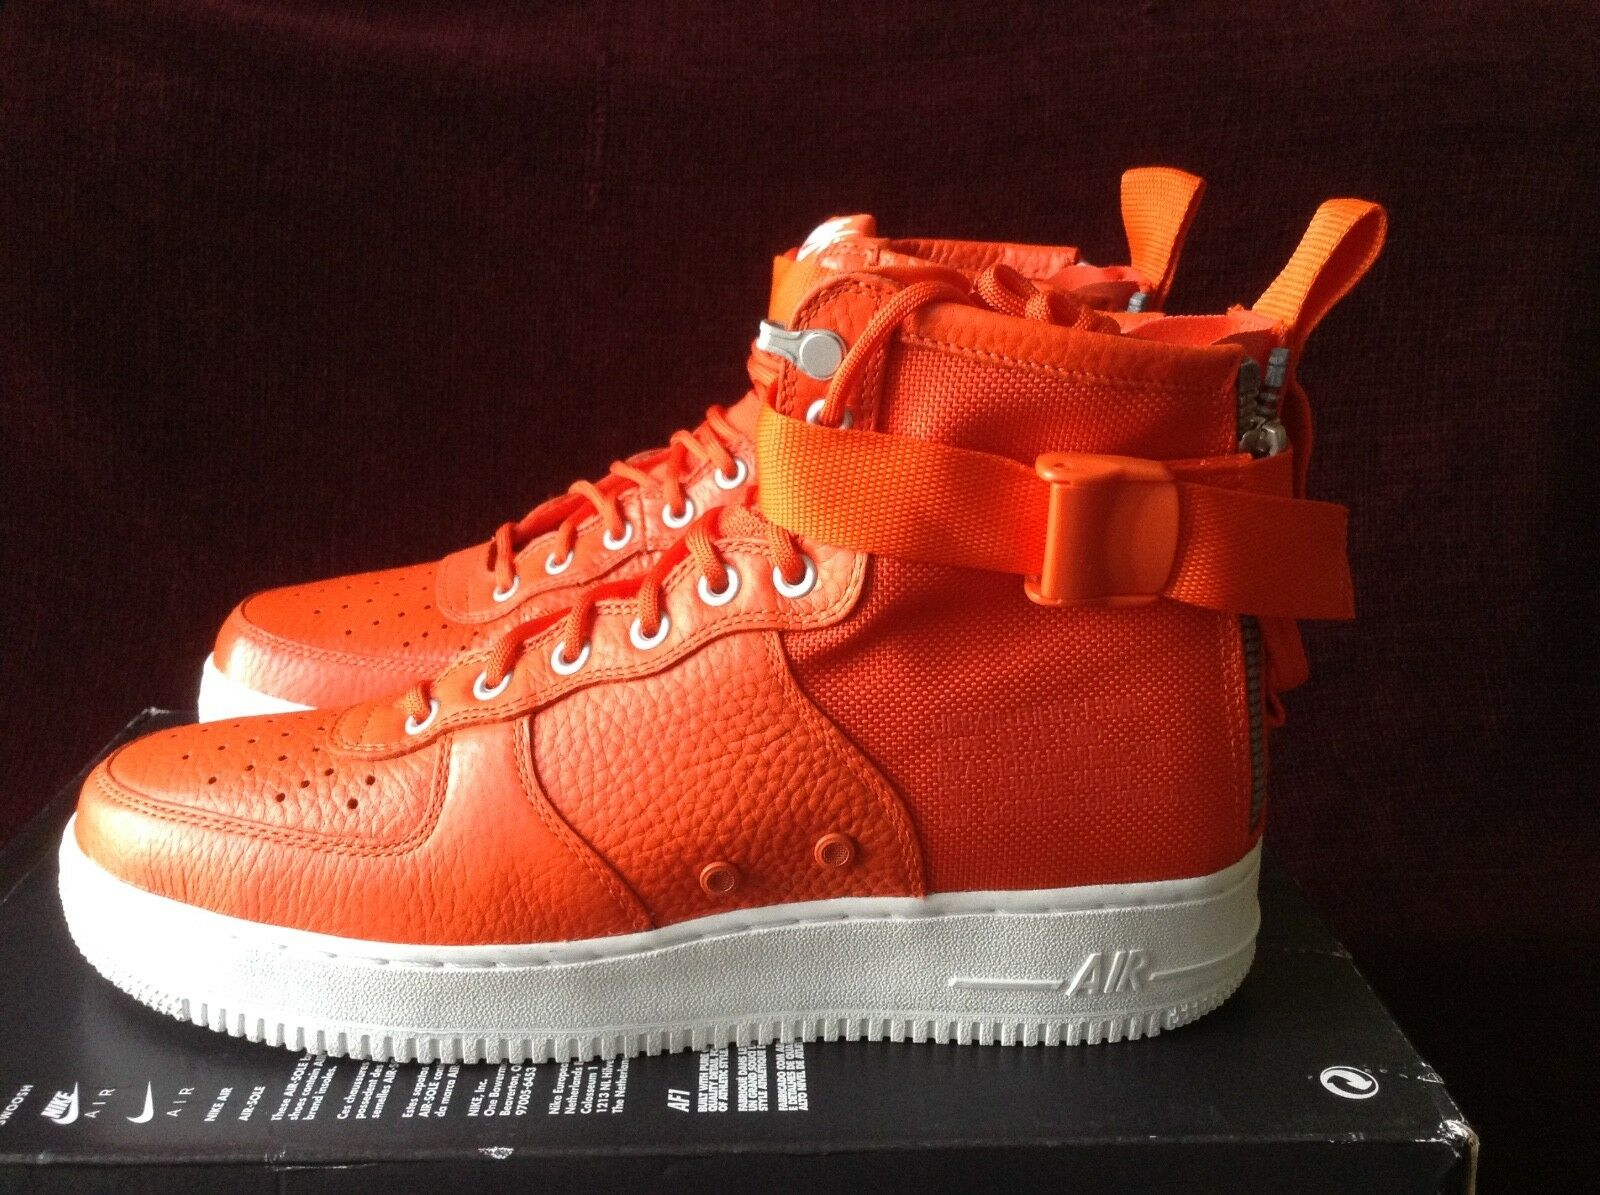 Nike SF AF1 Mid Team orange 917753-800 Size 10